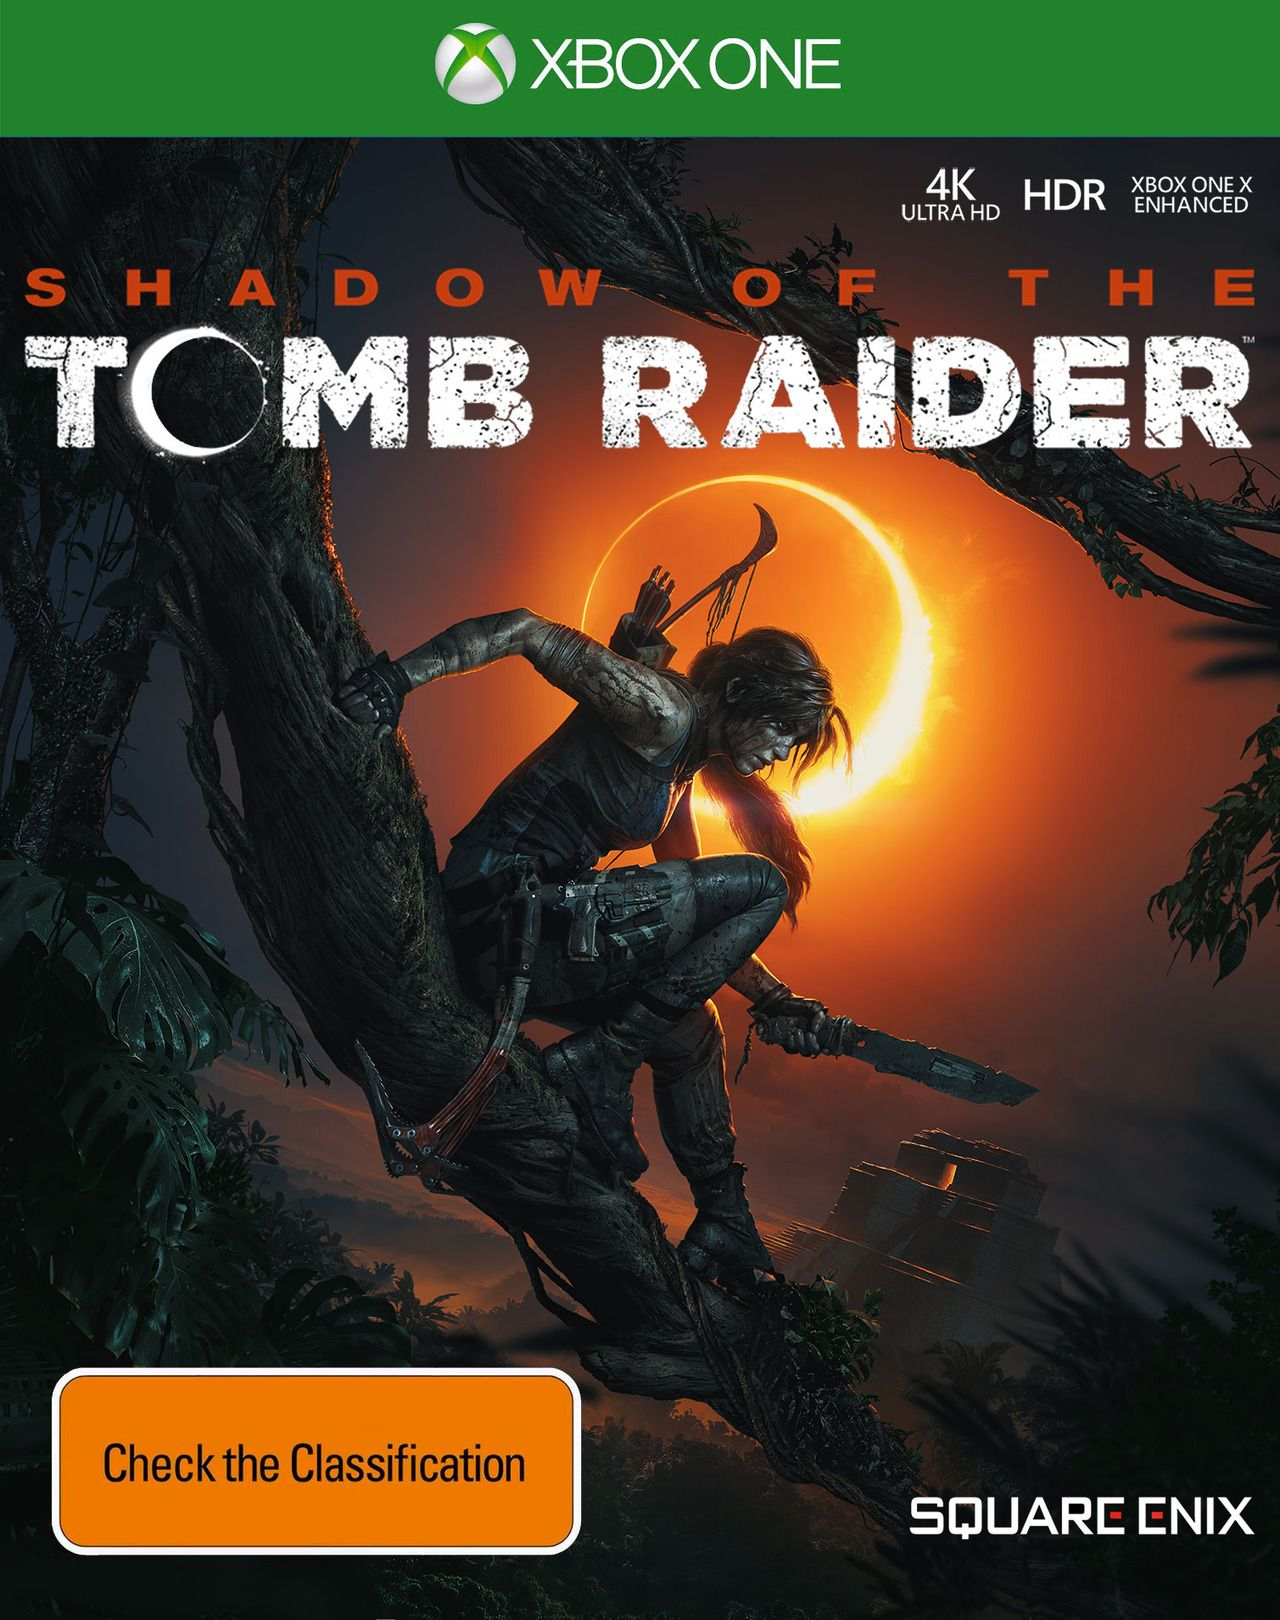 Shadow Of The Tomb Raider Xbox One X Cover Art Tomb Raider Game Tomb Raider Xbox One Tomb Raider Ps4